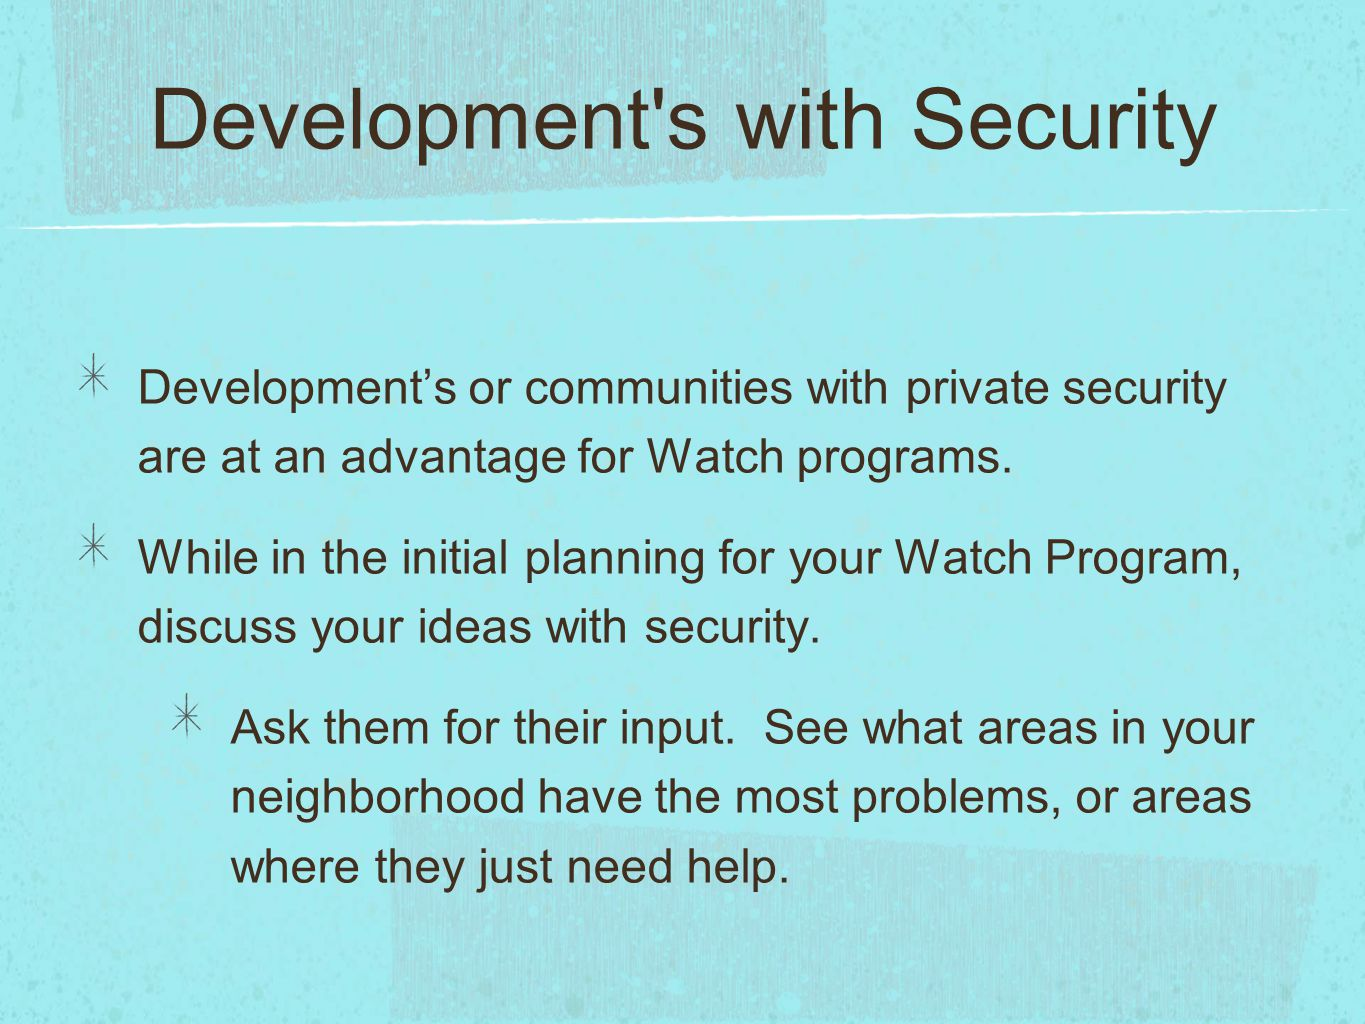 Development's or communities with private security are at an advantage for Watch programs. While in the initial planning for your Watch Program, discu